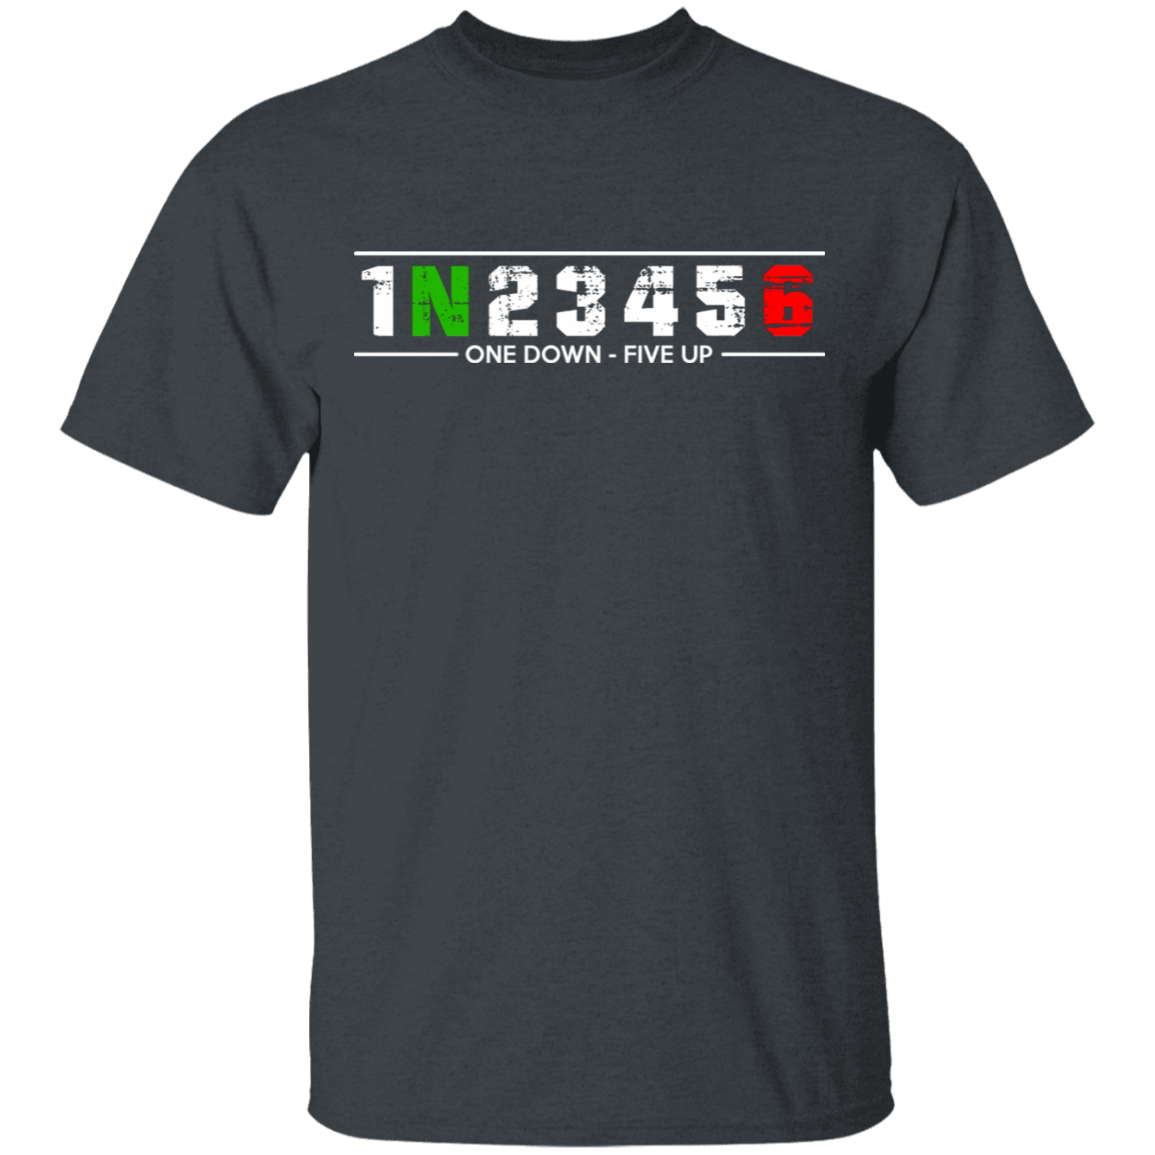 1 N 2 3 4 5 6 One Down Five Up T-Shirts, Hoodies, Tank 1049-9957-81647151-48192 - Tee Ript